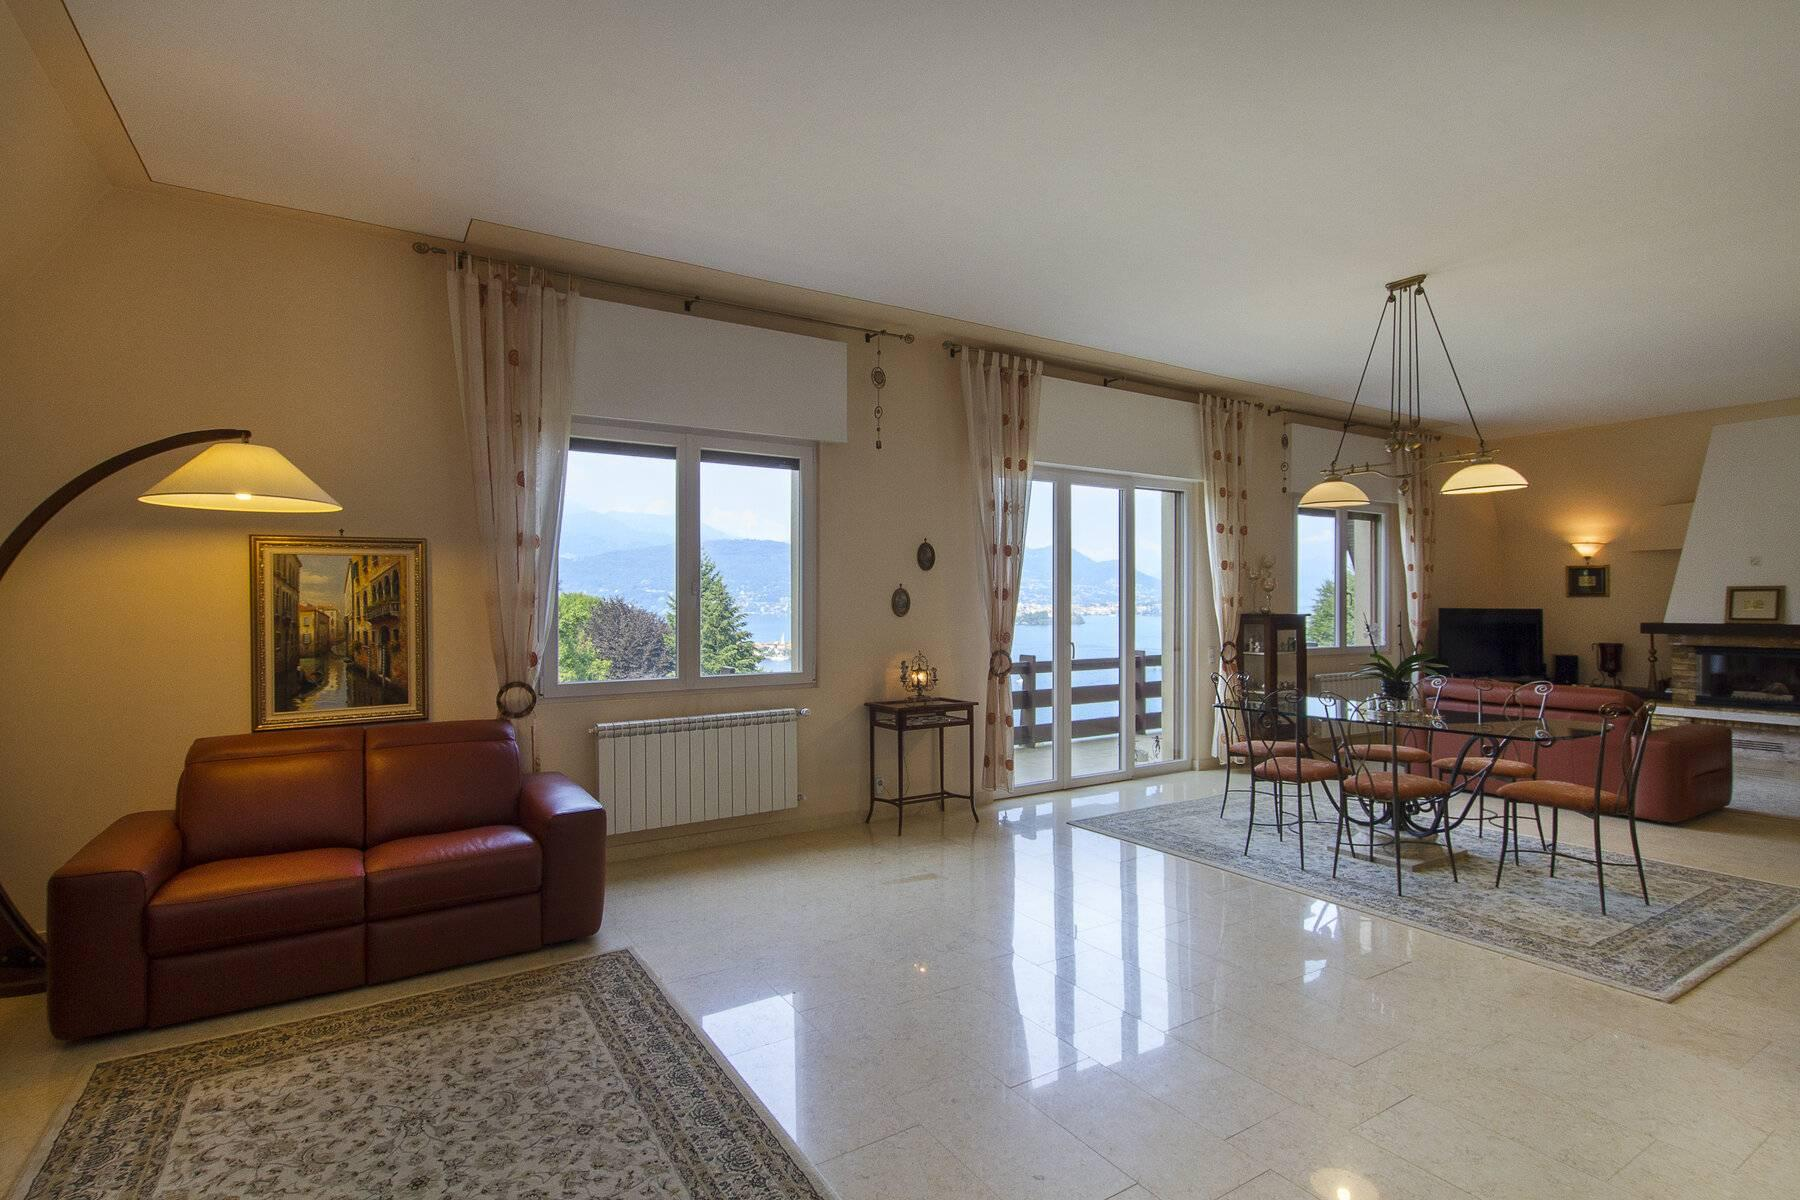 1960s style villa with breathtaking view of the Borromean Islands - 17